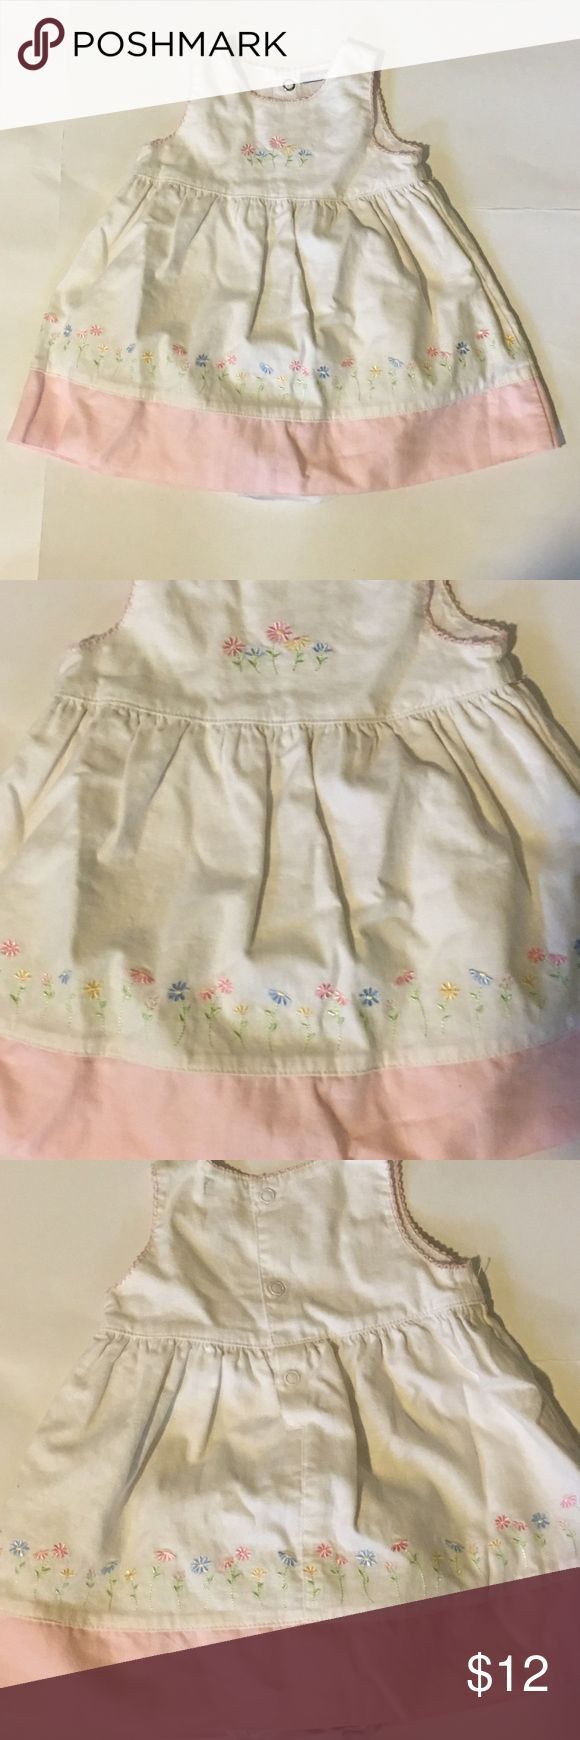 Carter's Dress. Beautiful dress includes bonus bloomers excellent used condition Carter's Dresses